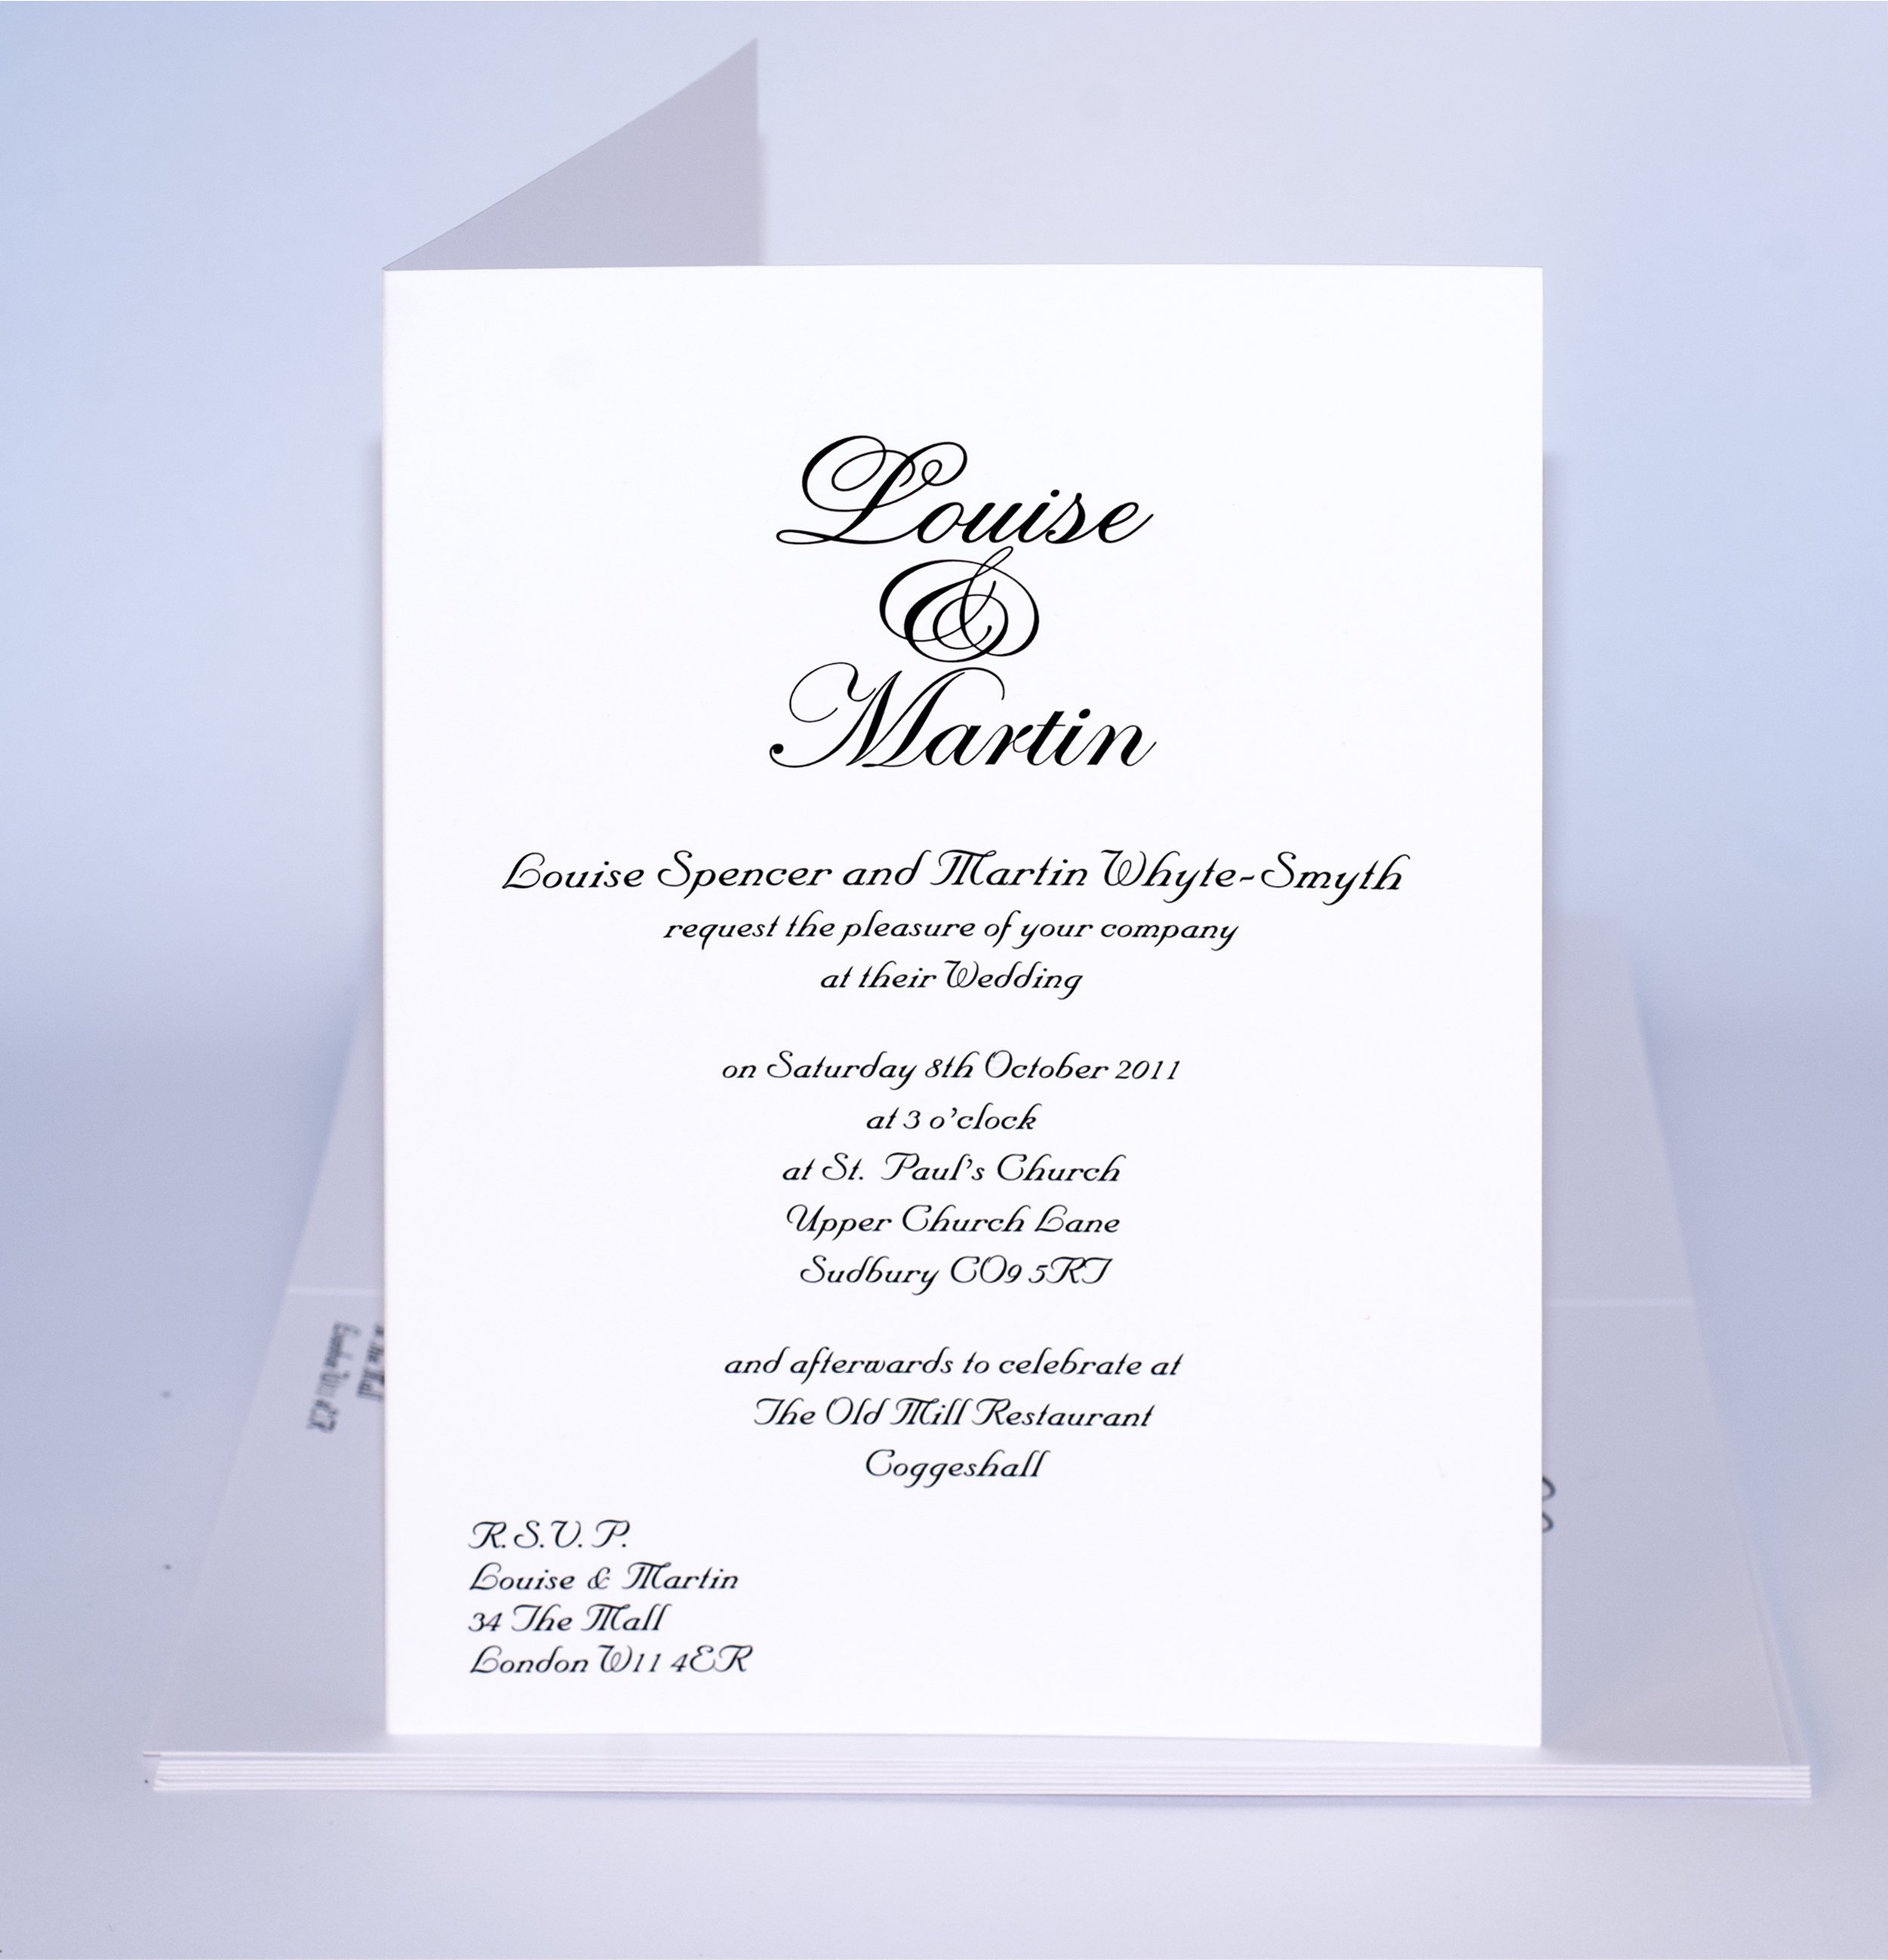 Sample Wedding Invitation Card: Sample Wedding Invitations Templates